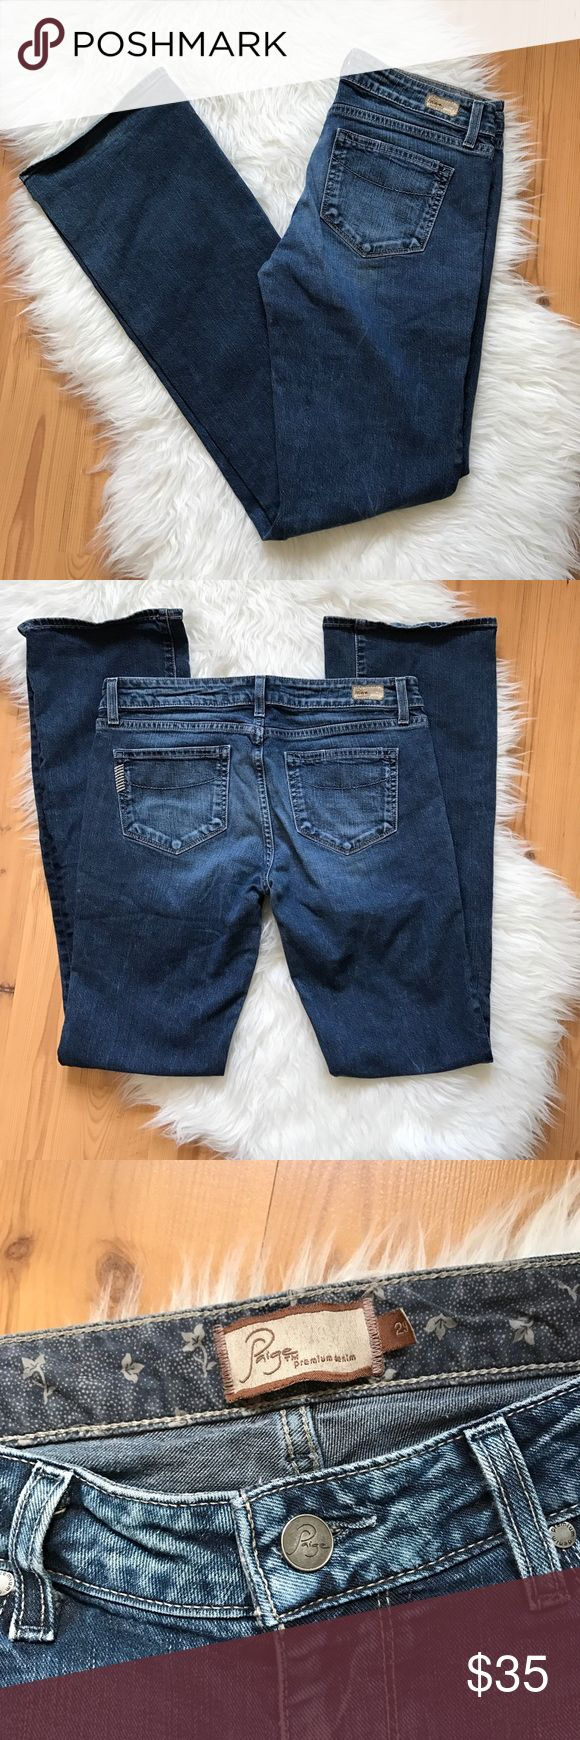 """Paige Benedict Canyon Classic Rise Jeans 29x33 Paige Benedict Canyon Classic Rise Womens Jeans Pegies Tall Long  Size: 29 Measurements: Inseam 33"""" Waist 15.5"""" Leg Opening 9"""" Length 43"""" Country of Manufacture: Mexico Material: 98% Cotton 2: Spandex Paige Jeans Jeans Boot Cut"""